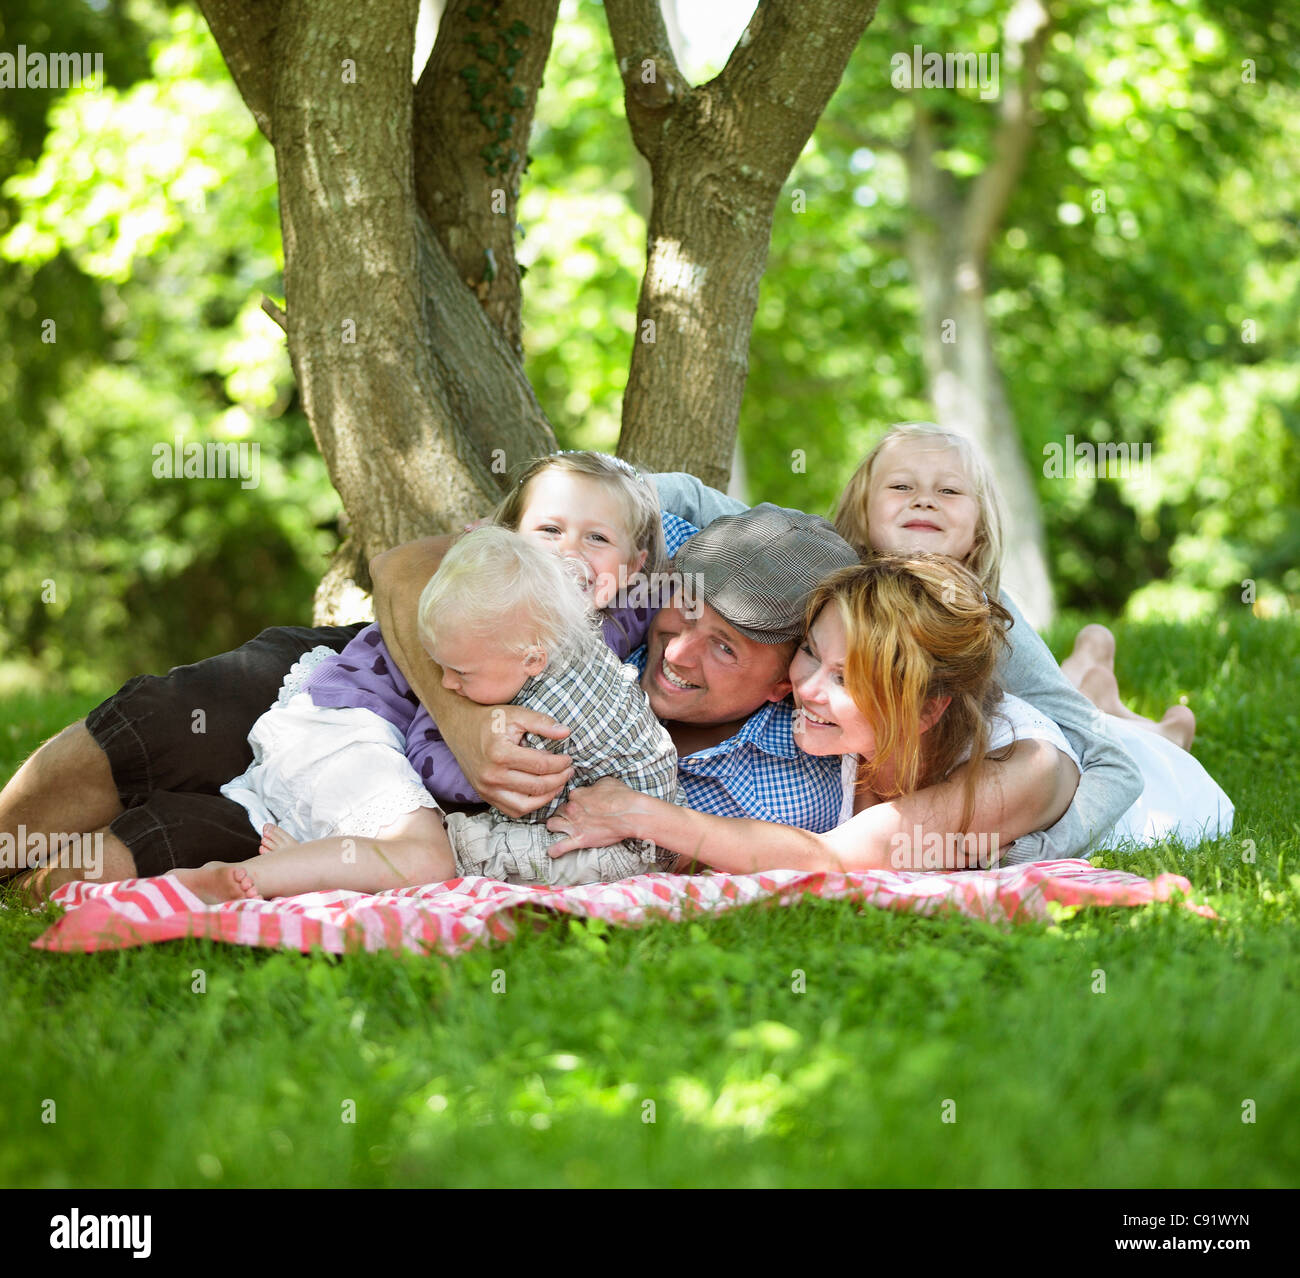 Family having picnic together - Stock Image